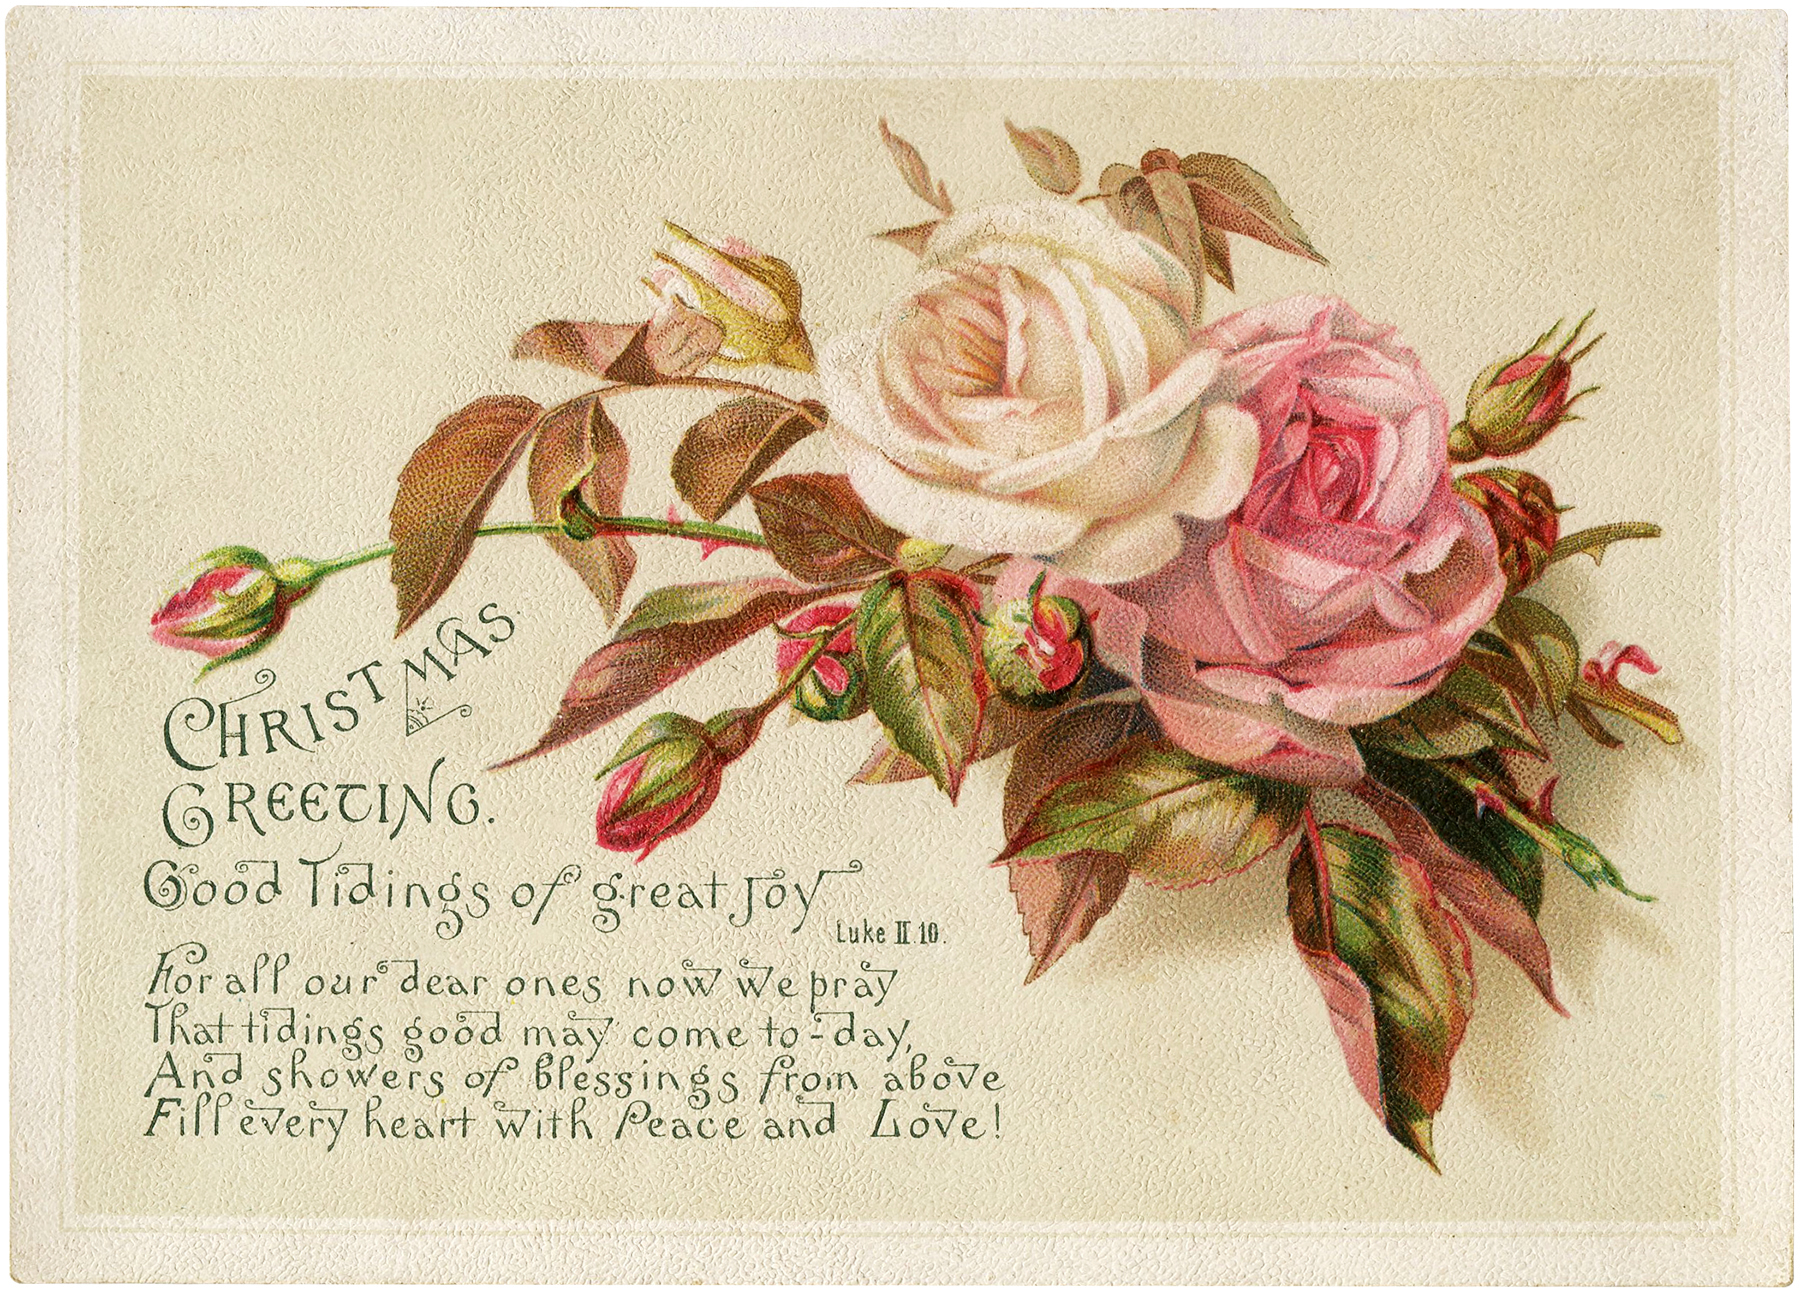 vintage christmas roses image the graphics fairy. Black Bedroom Furniture Sets. Home Design Ideas